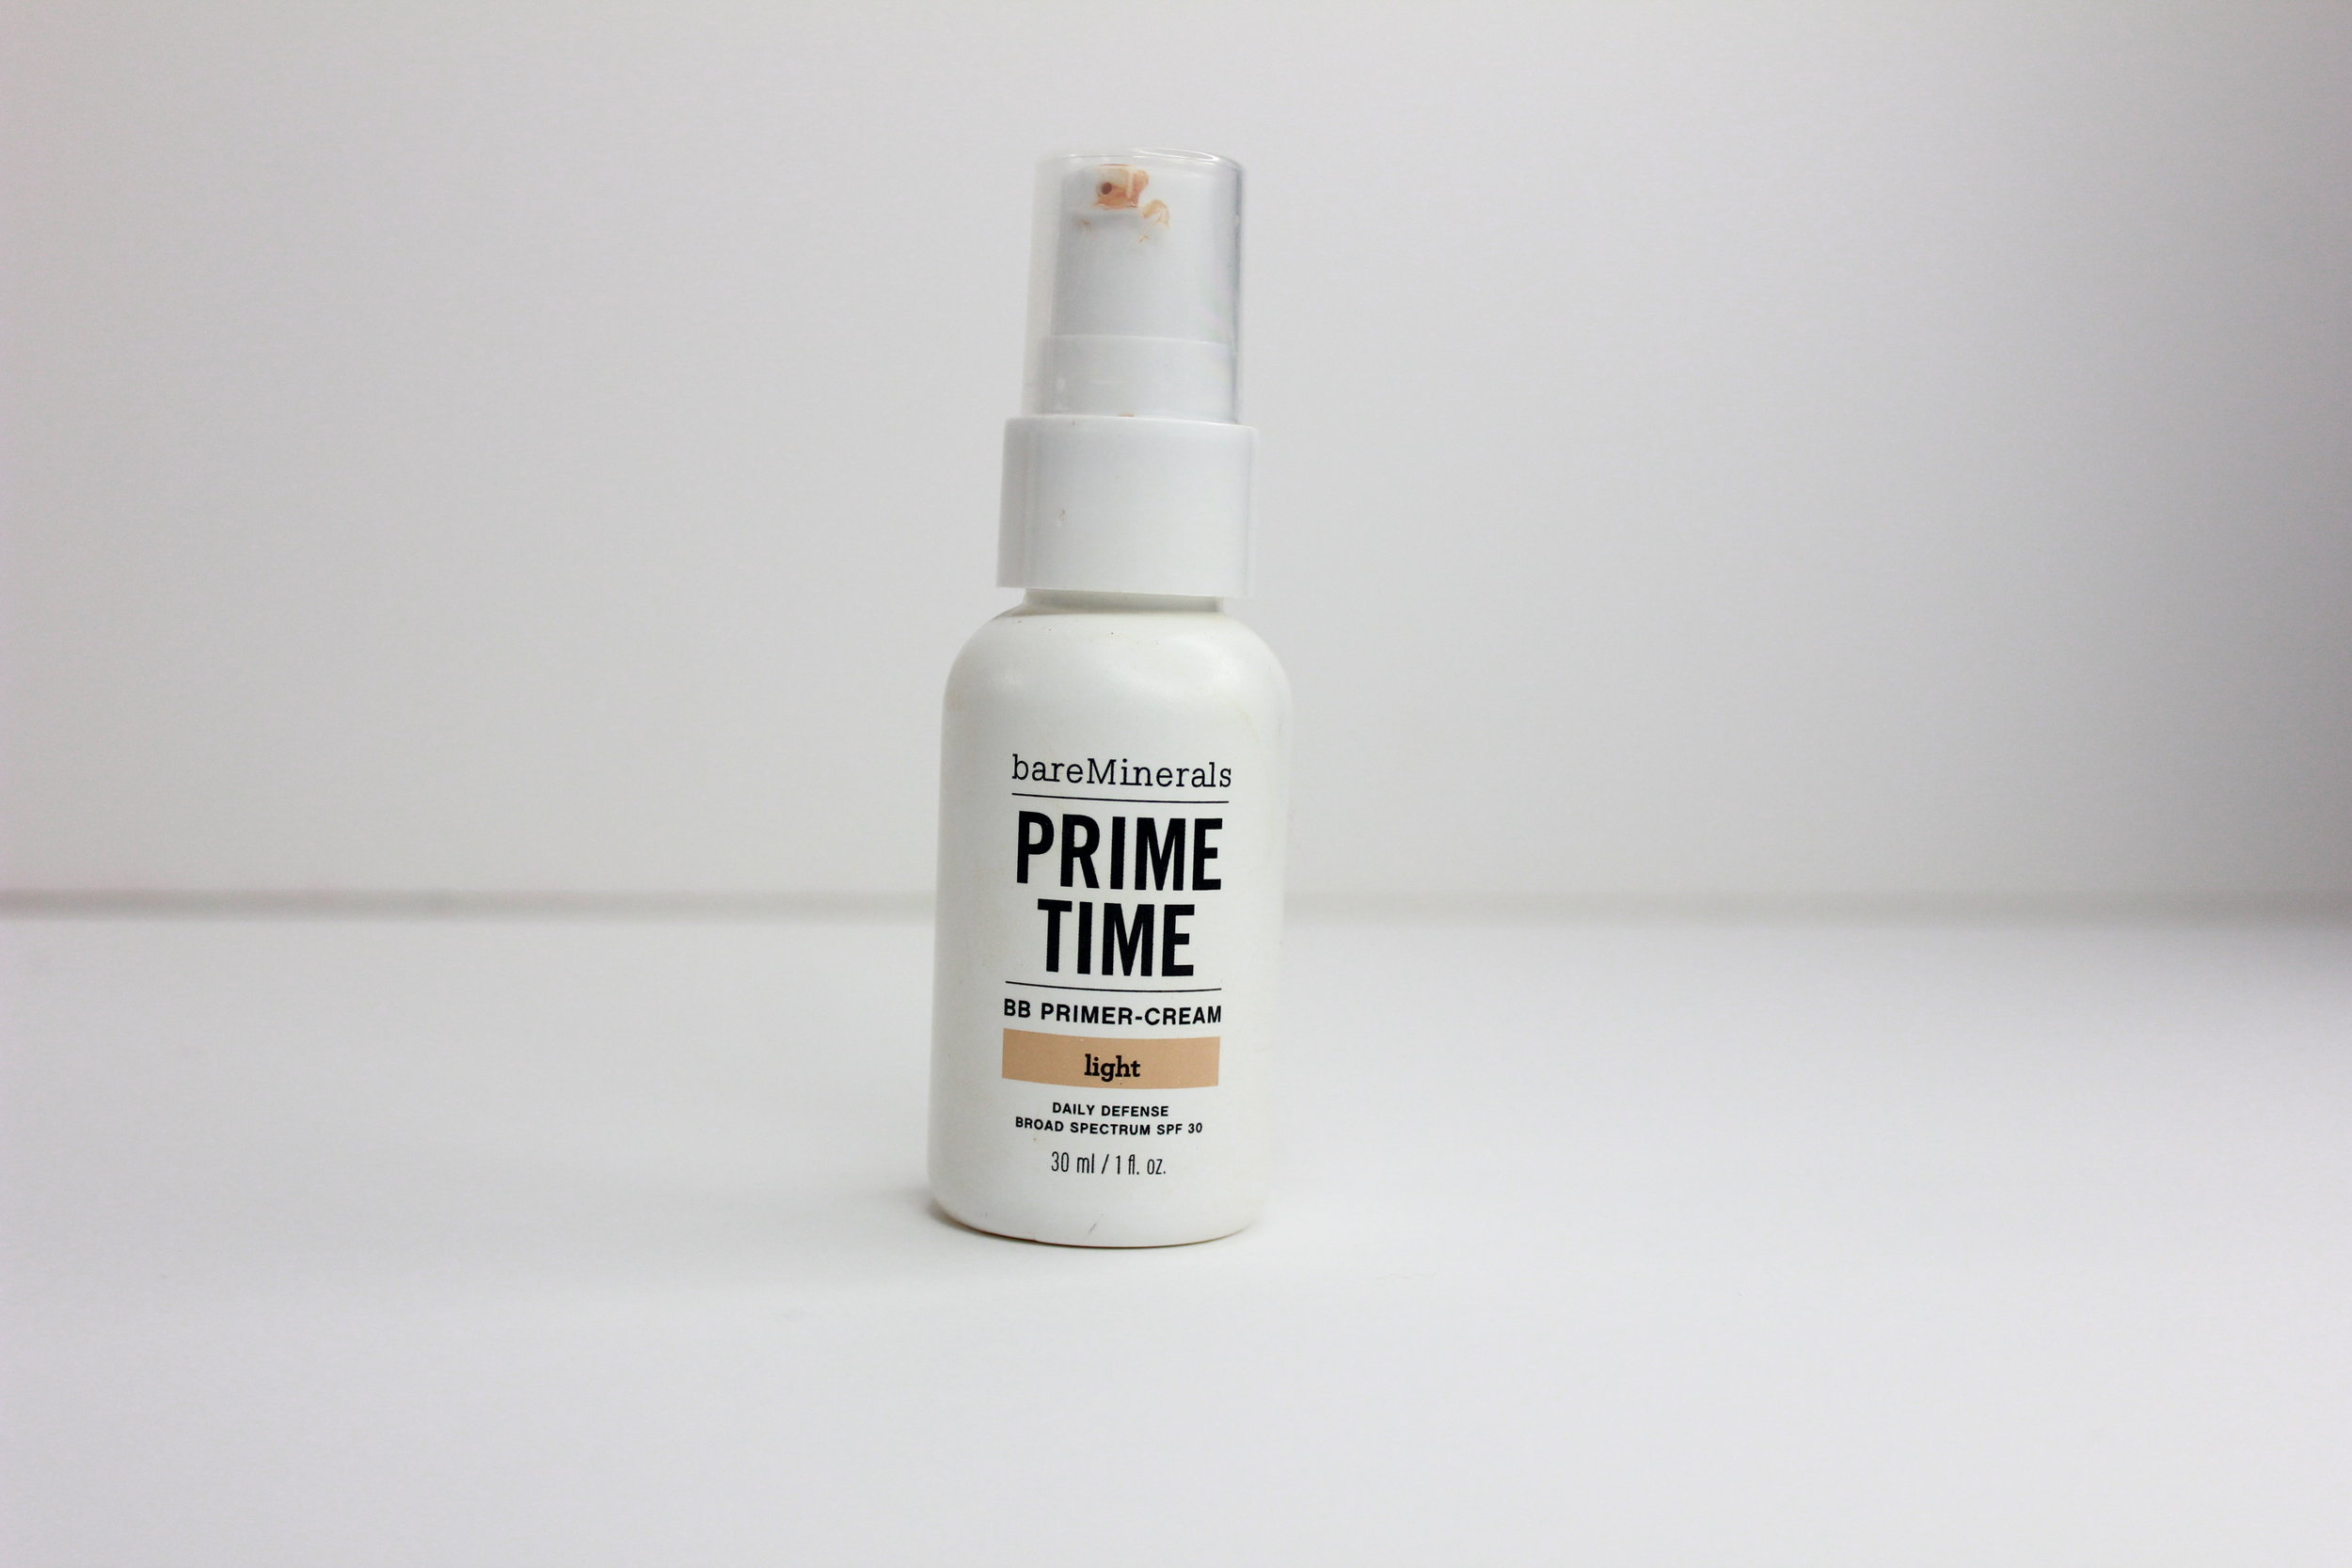 bareMinerals Prime Time BB Primer-Cream 1